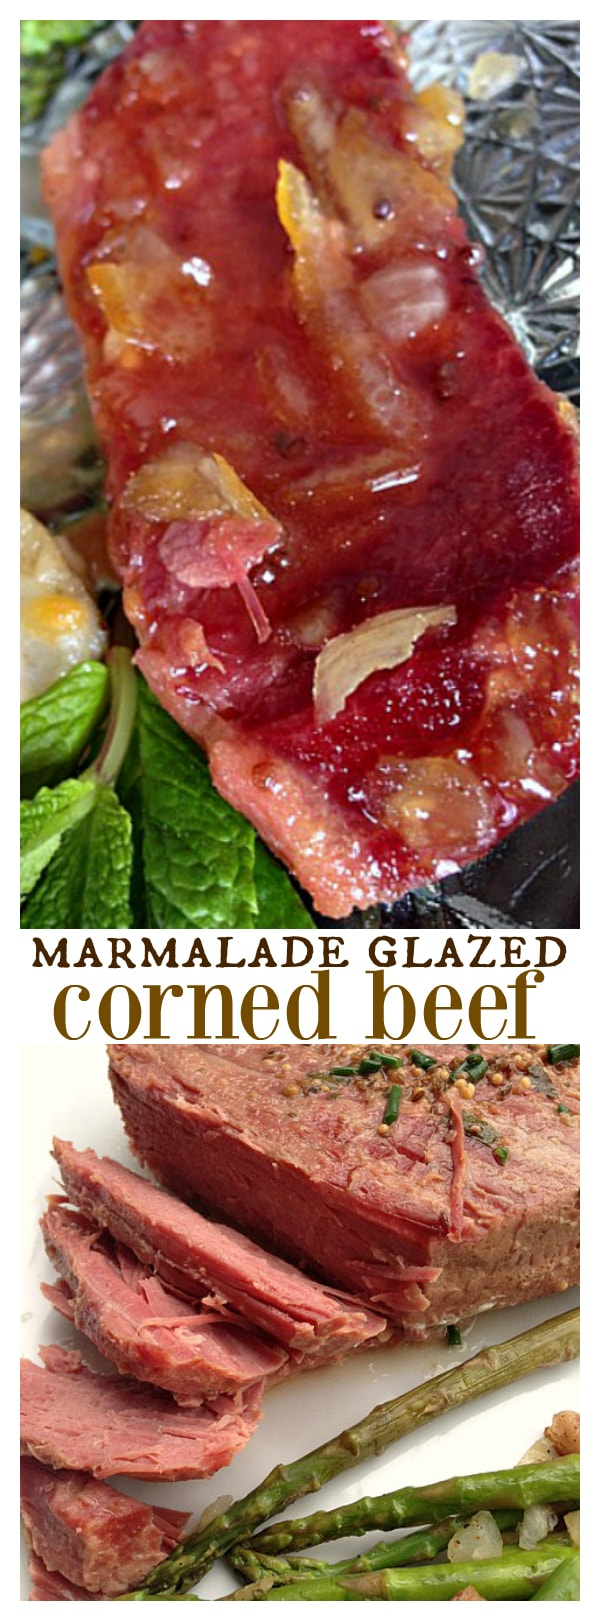 Marmalade Glazed Corned Beef